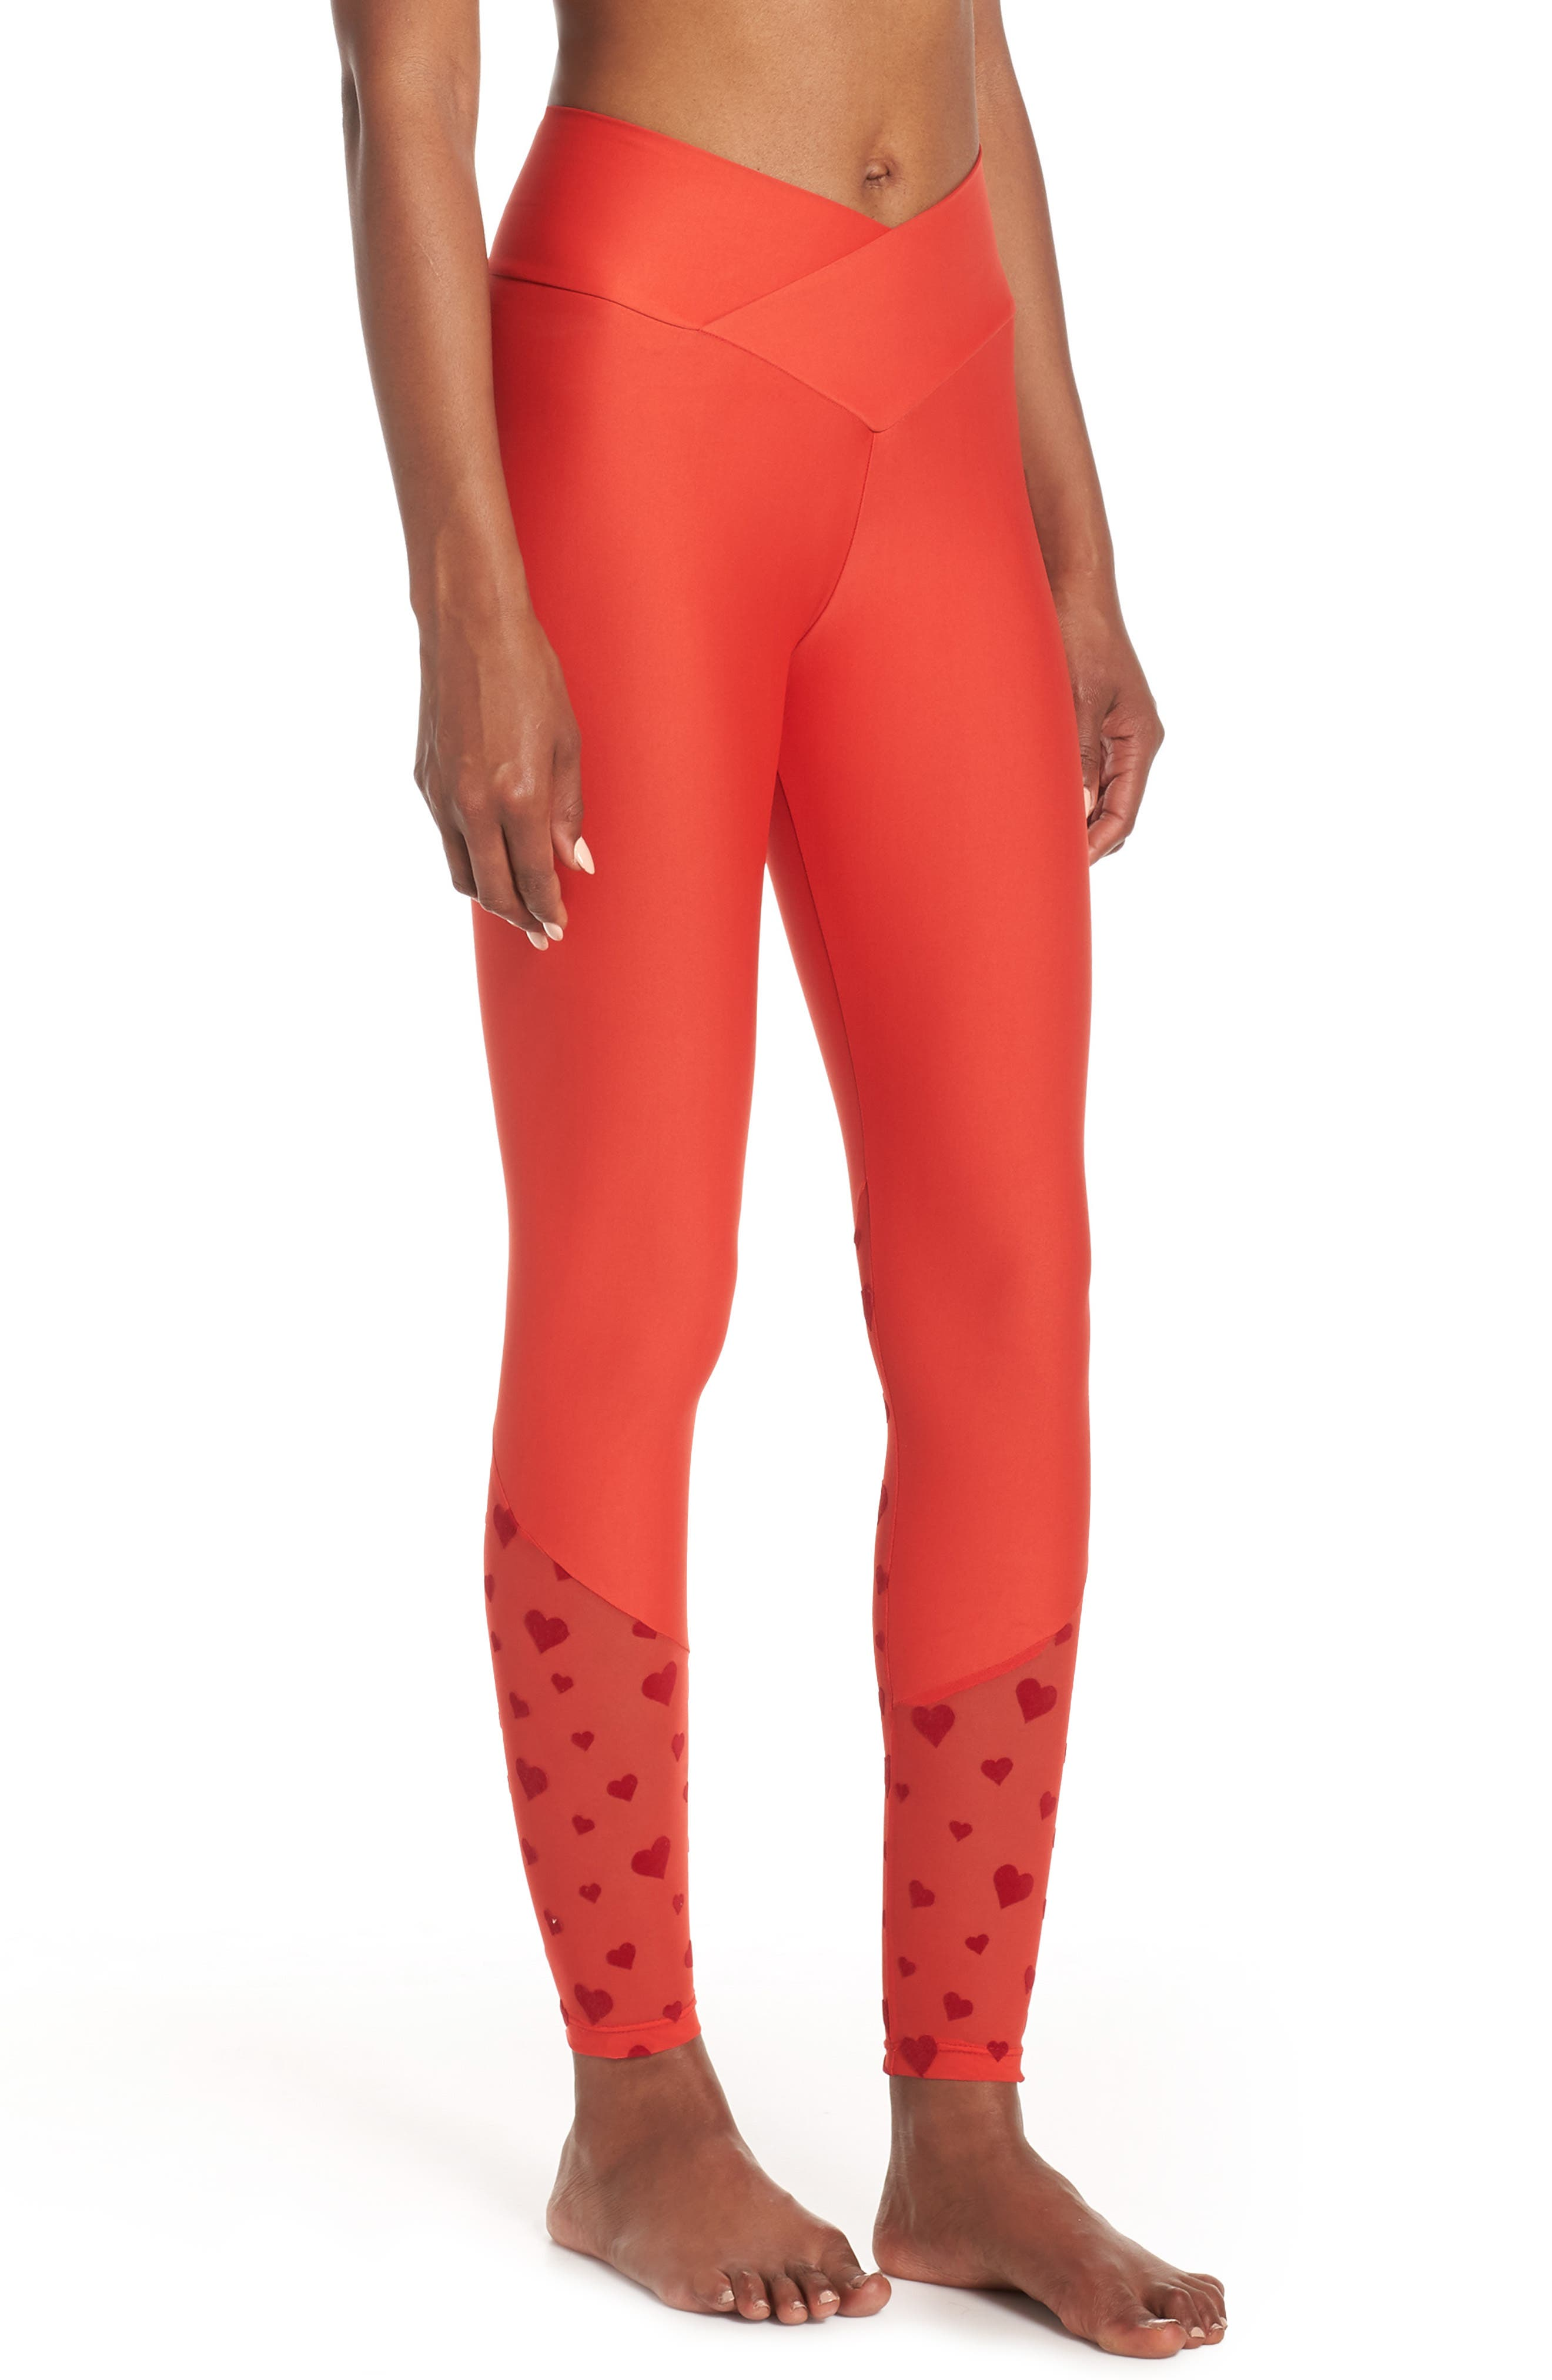 BEACH RIOT,                             Beach Leggings,                             Alternate thumbnail 4, color,                             RED HEART